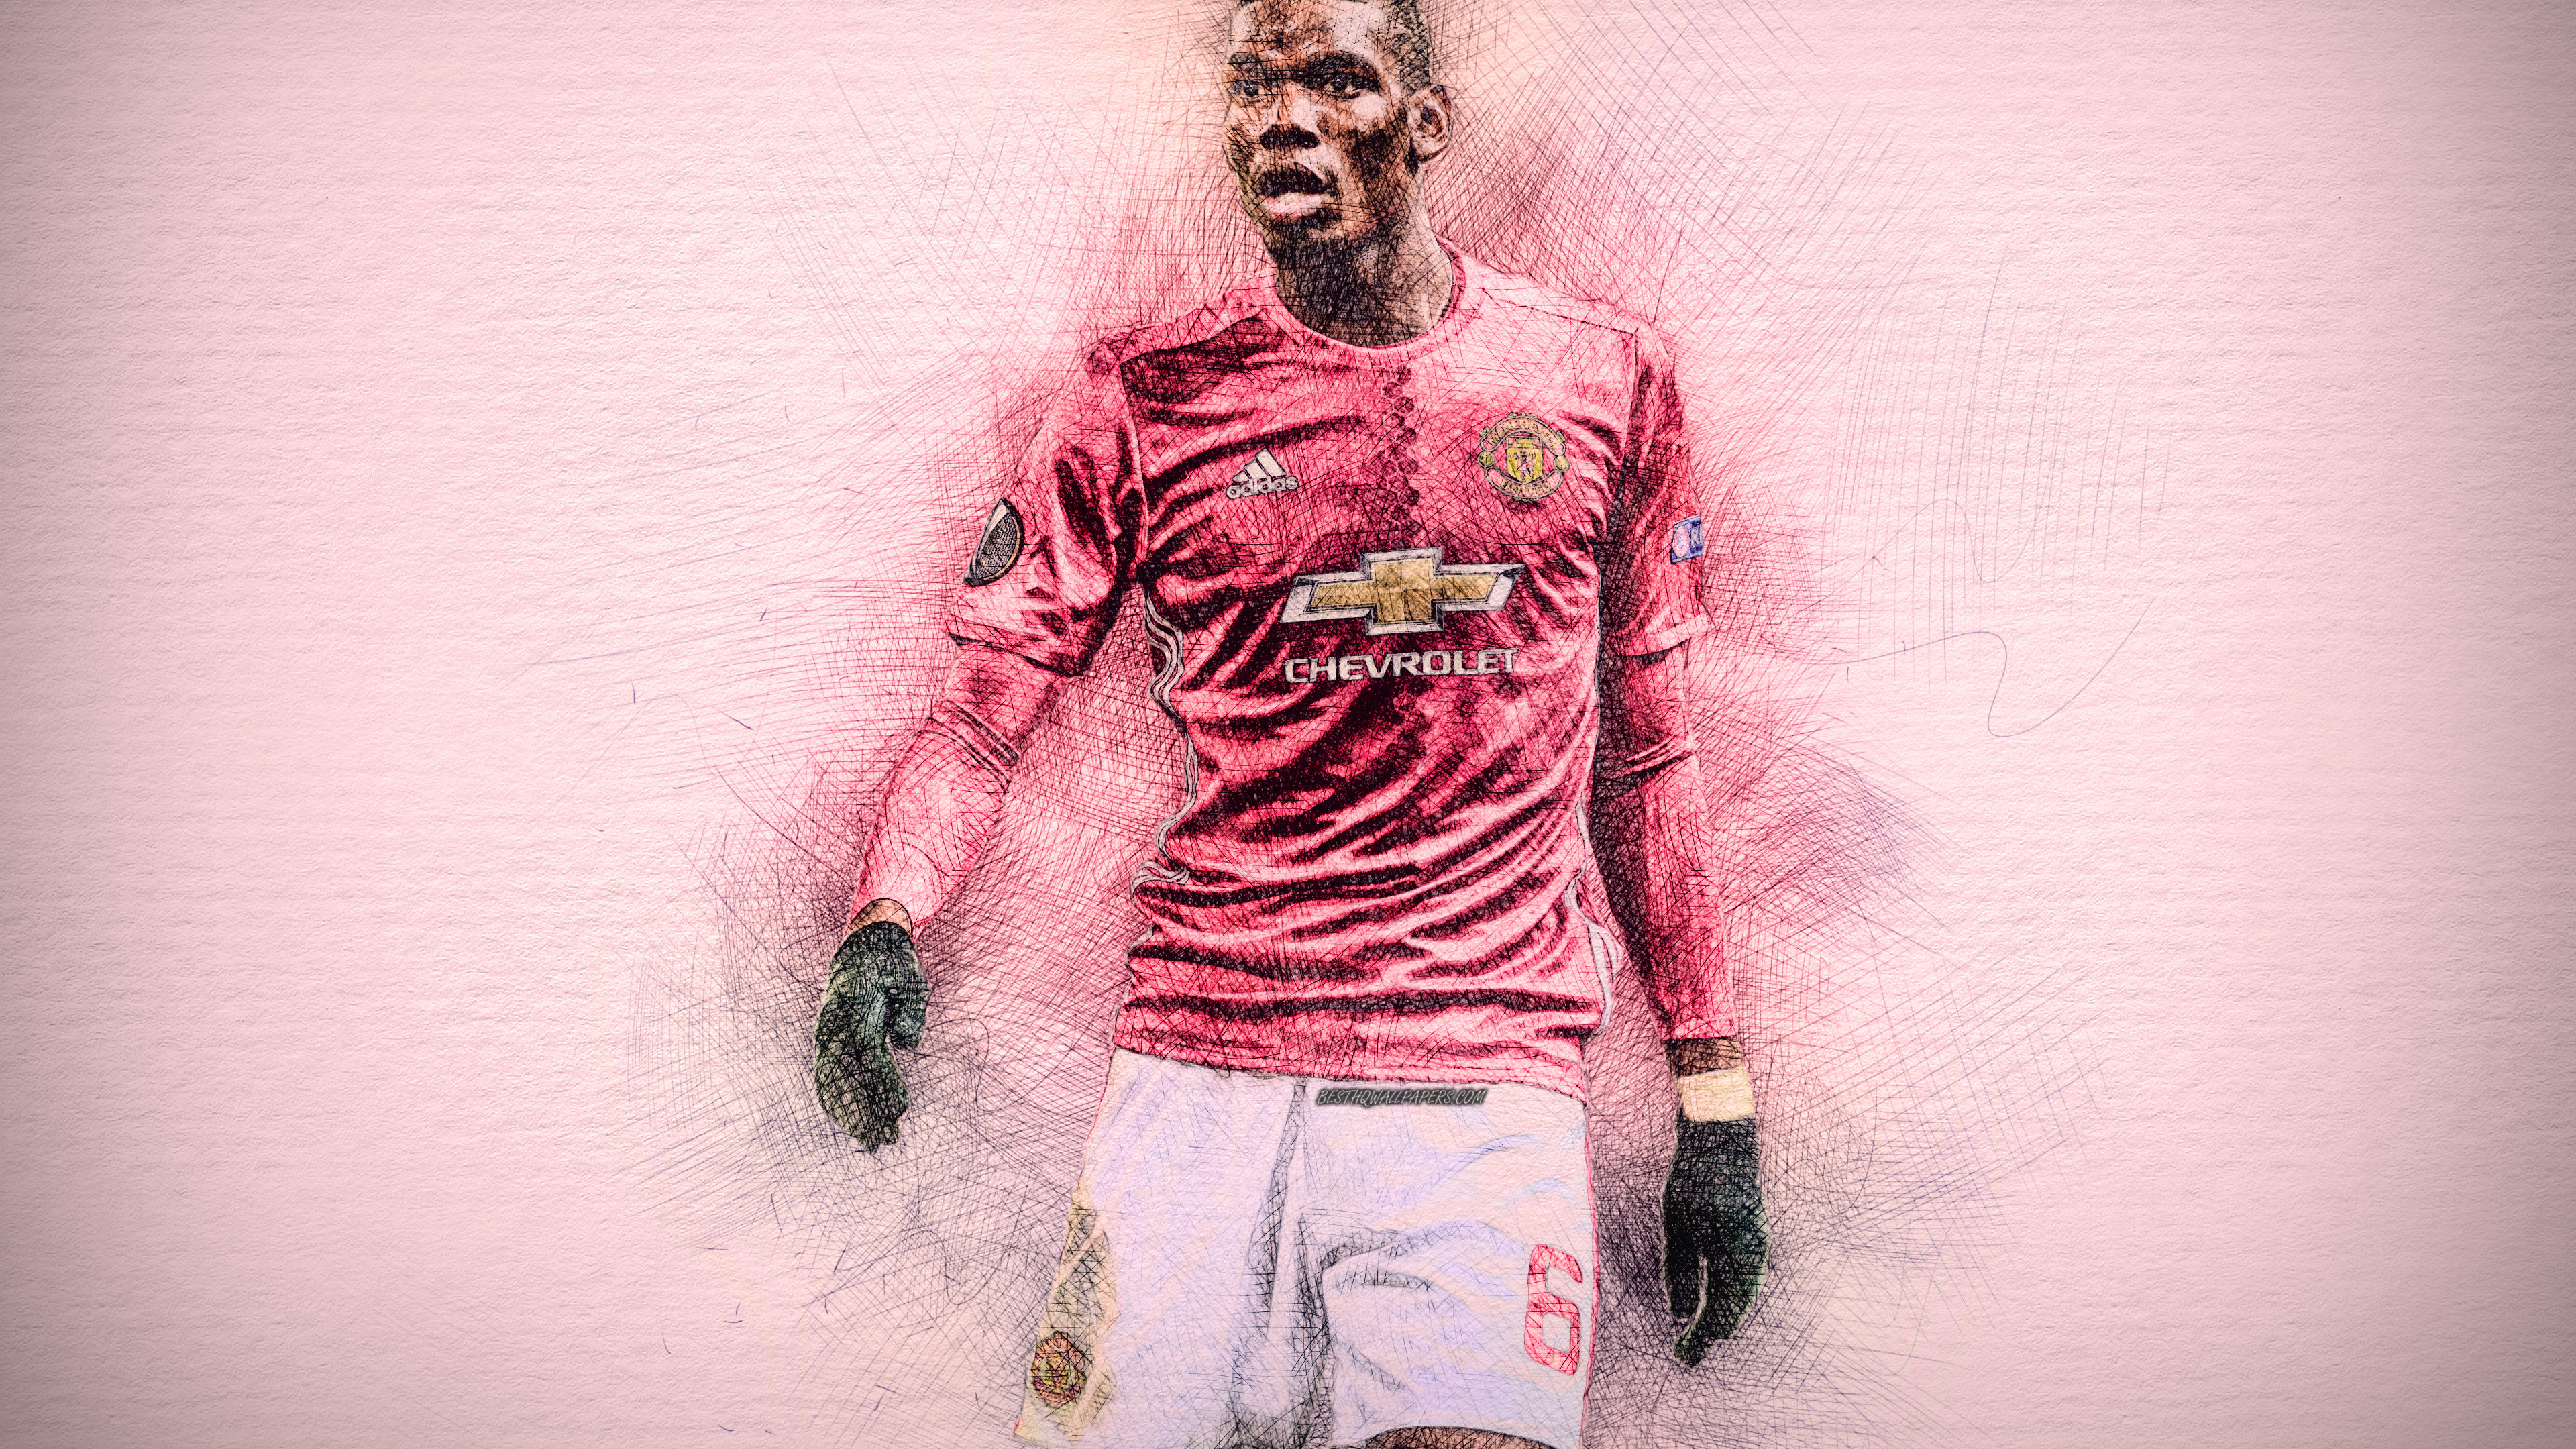 3840x2160 Paul Pogba Fc Manchester United 4k Wallpaper Hd